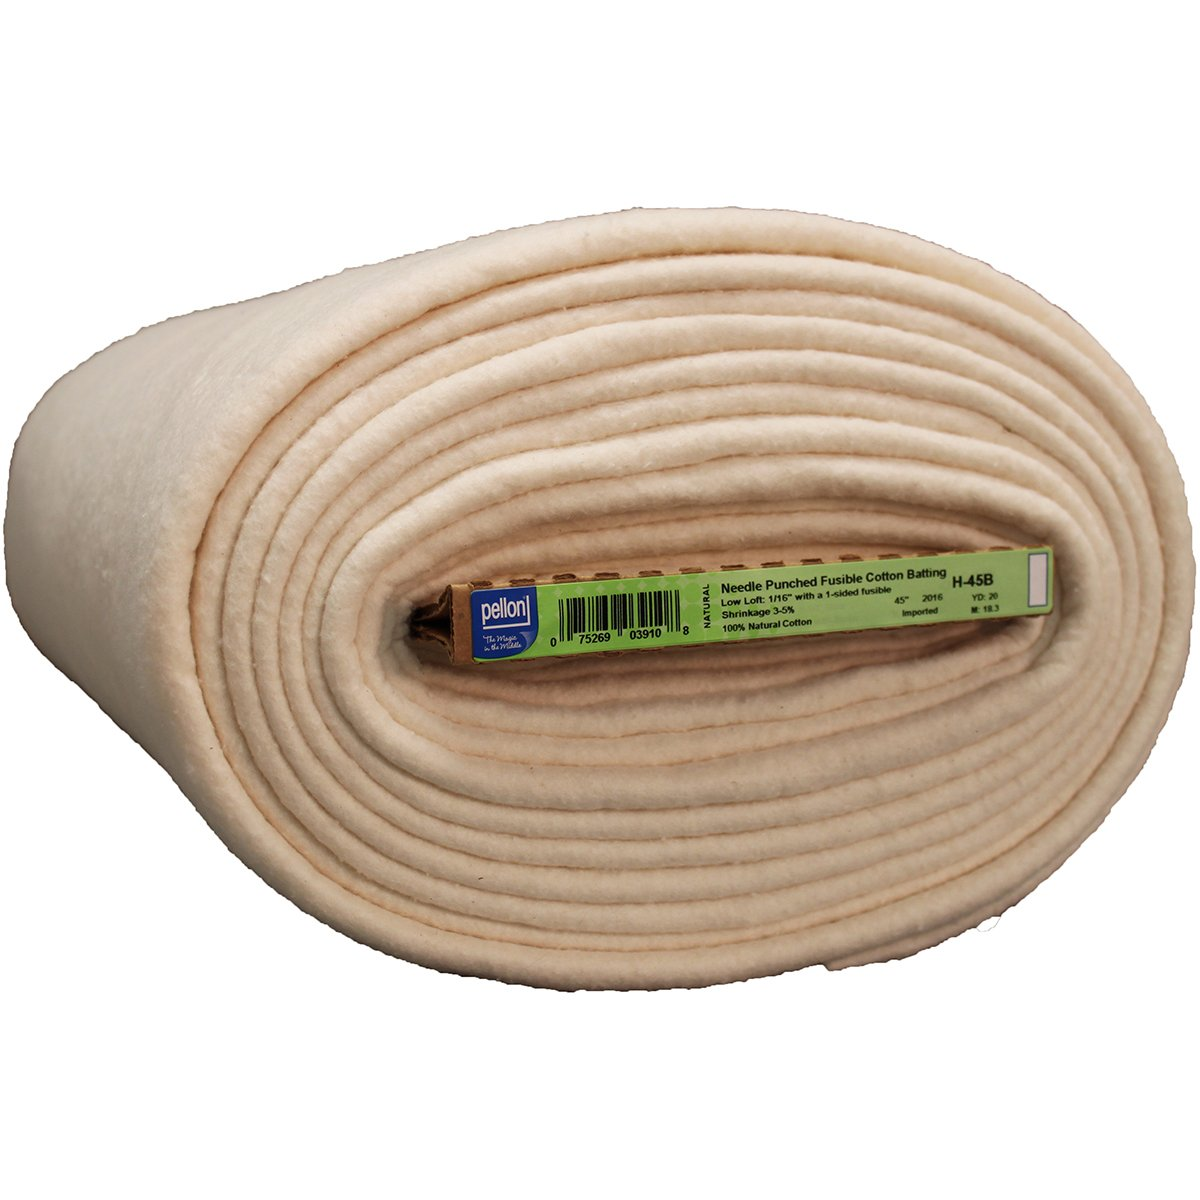 Pellon H-45B Fob MI Fusible Cotton Batting 45 x 20 yd